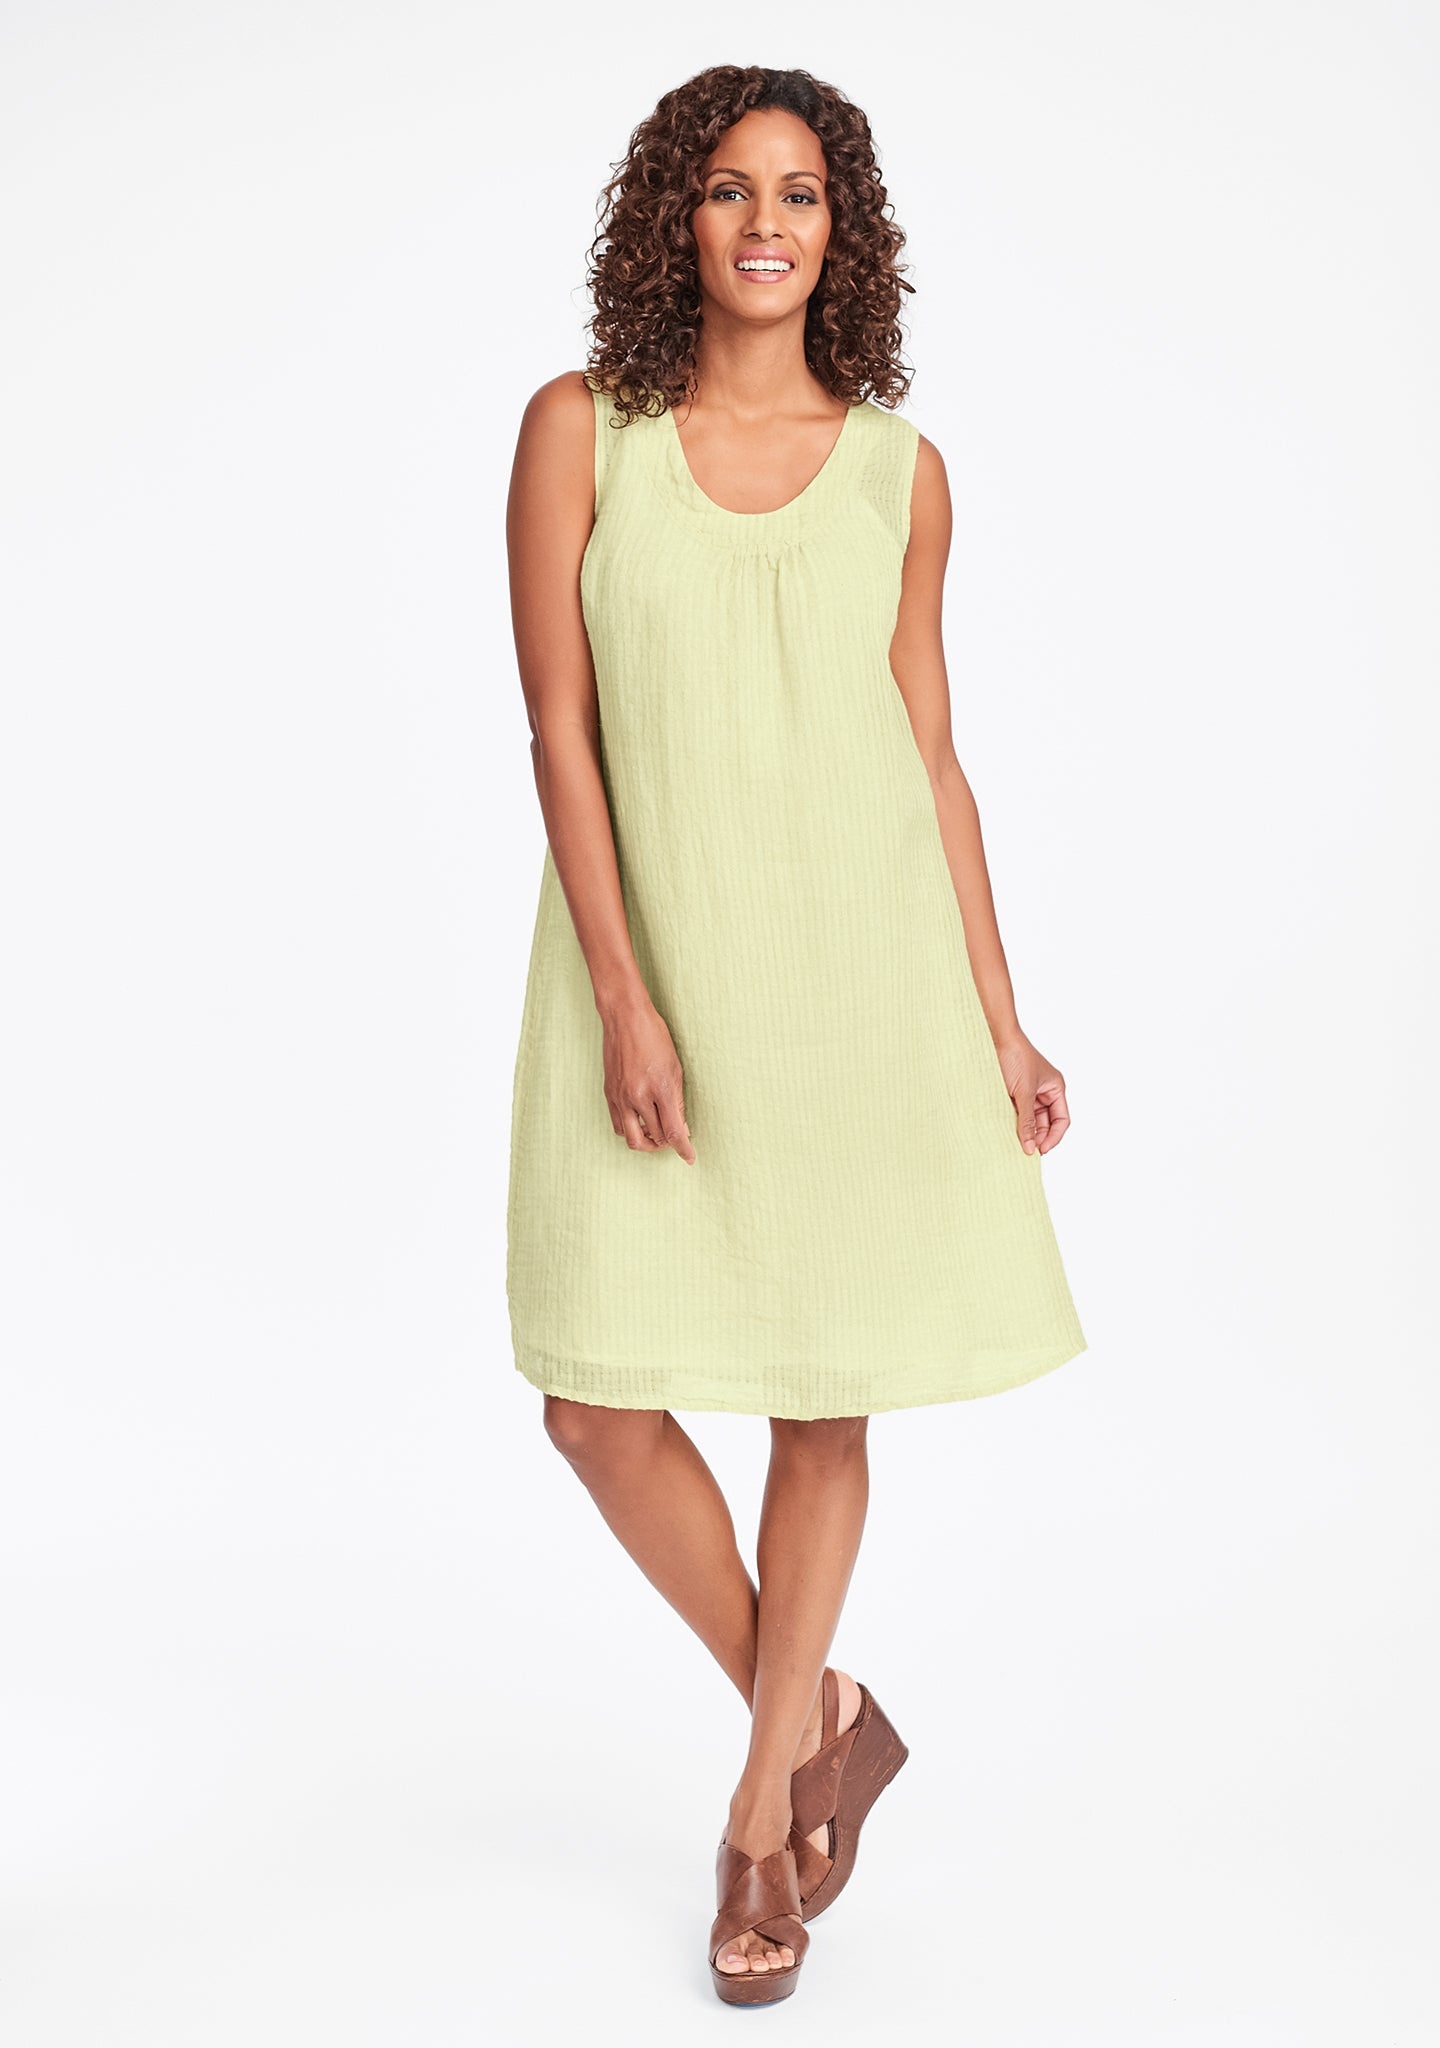 tao dress linen shift dress yellow